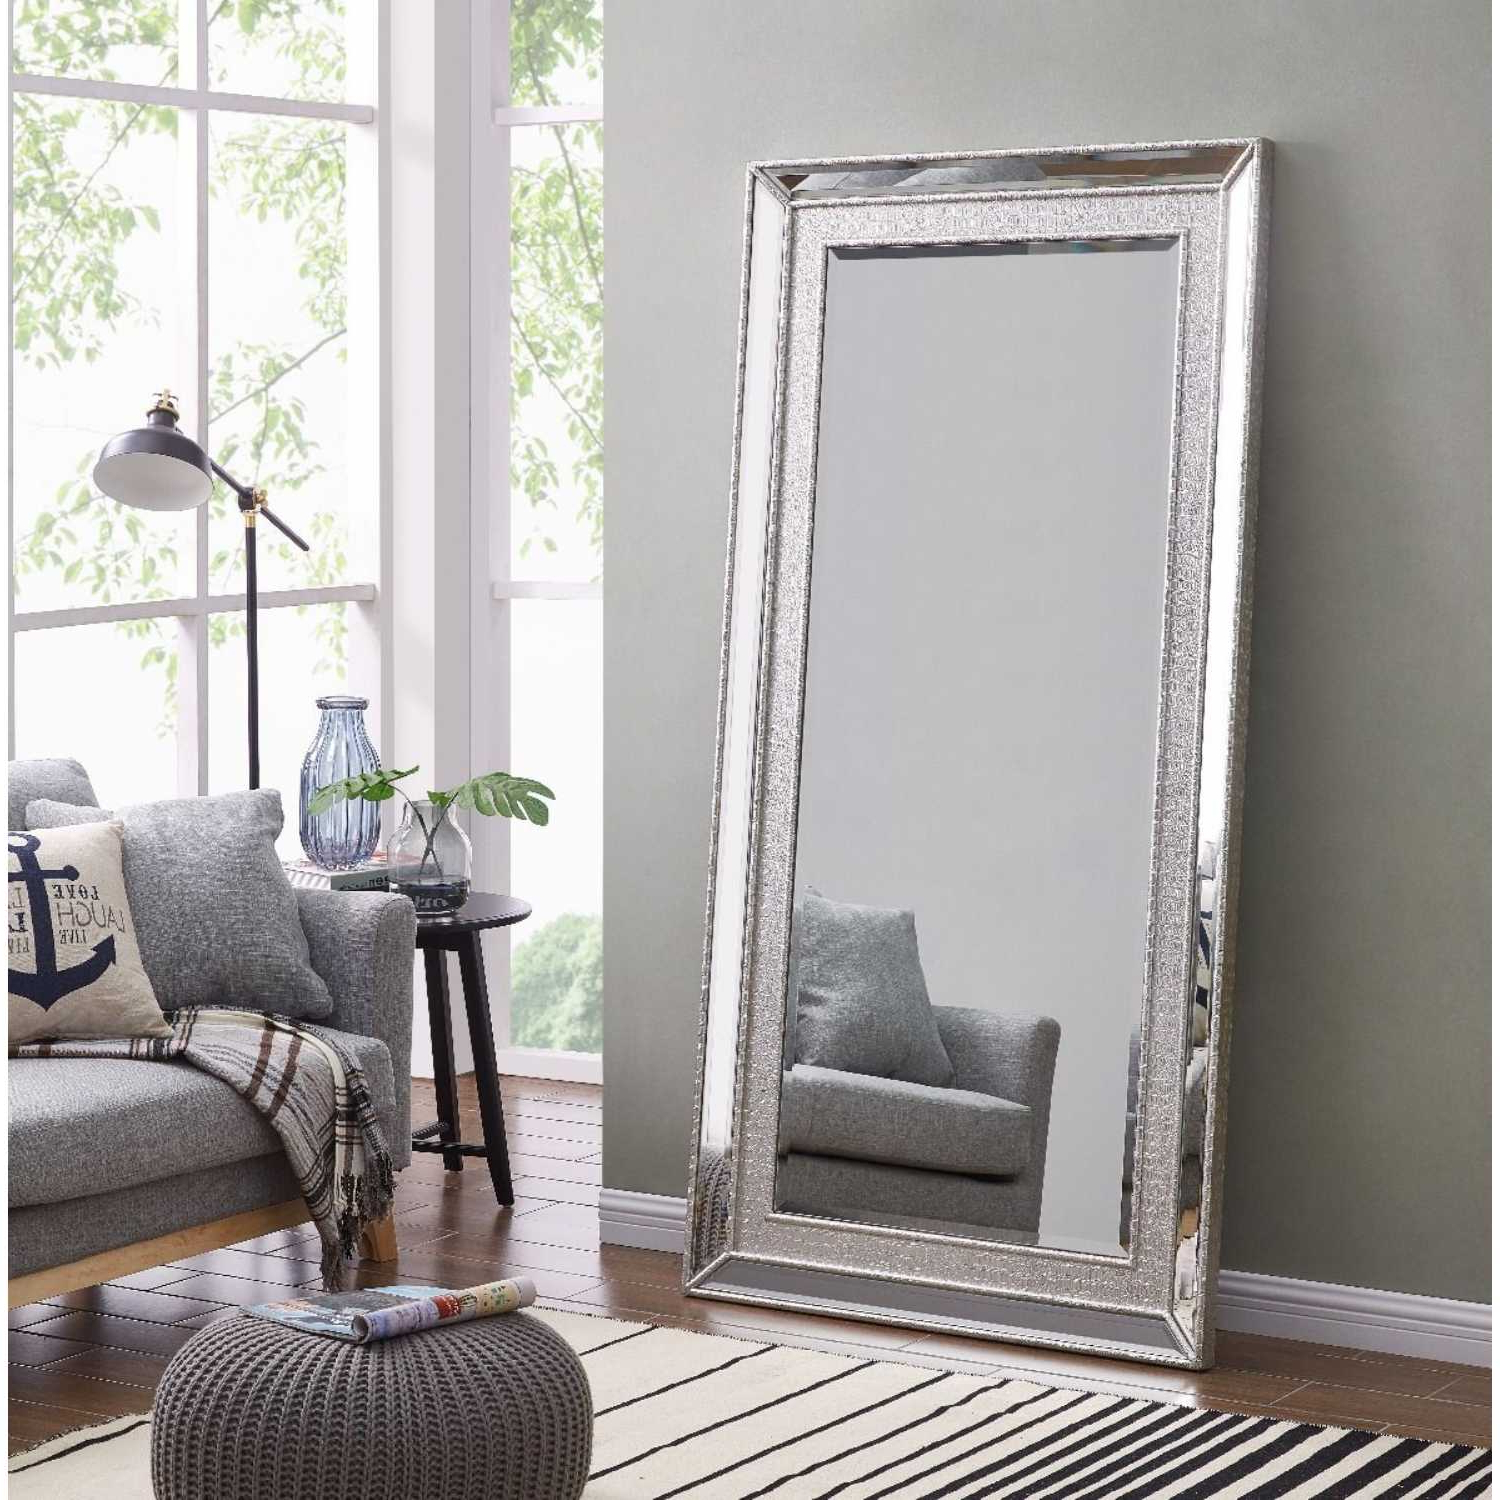 Grand Sofia Silver Extra Large Wall Floor Dressing Mirror 6Ft X 3Ft For Trendy X Large Wall Mirrors (View 6 of 20)